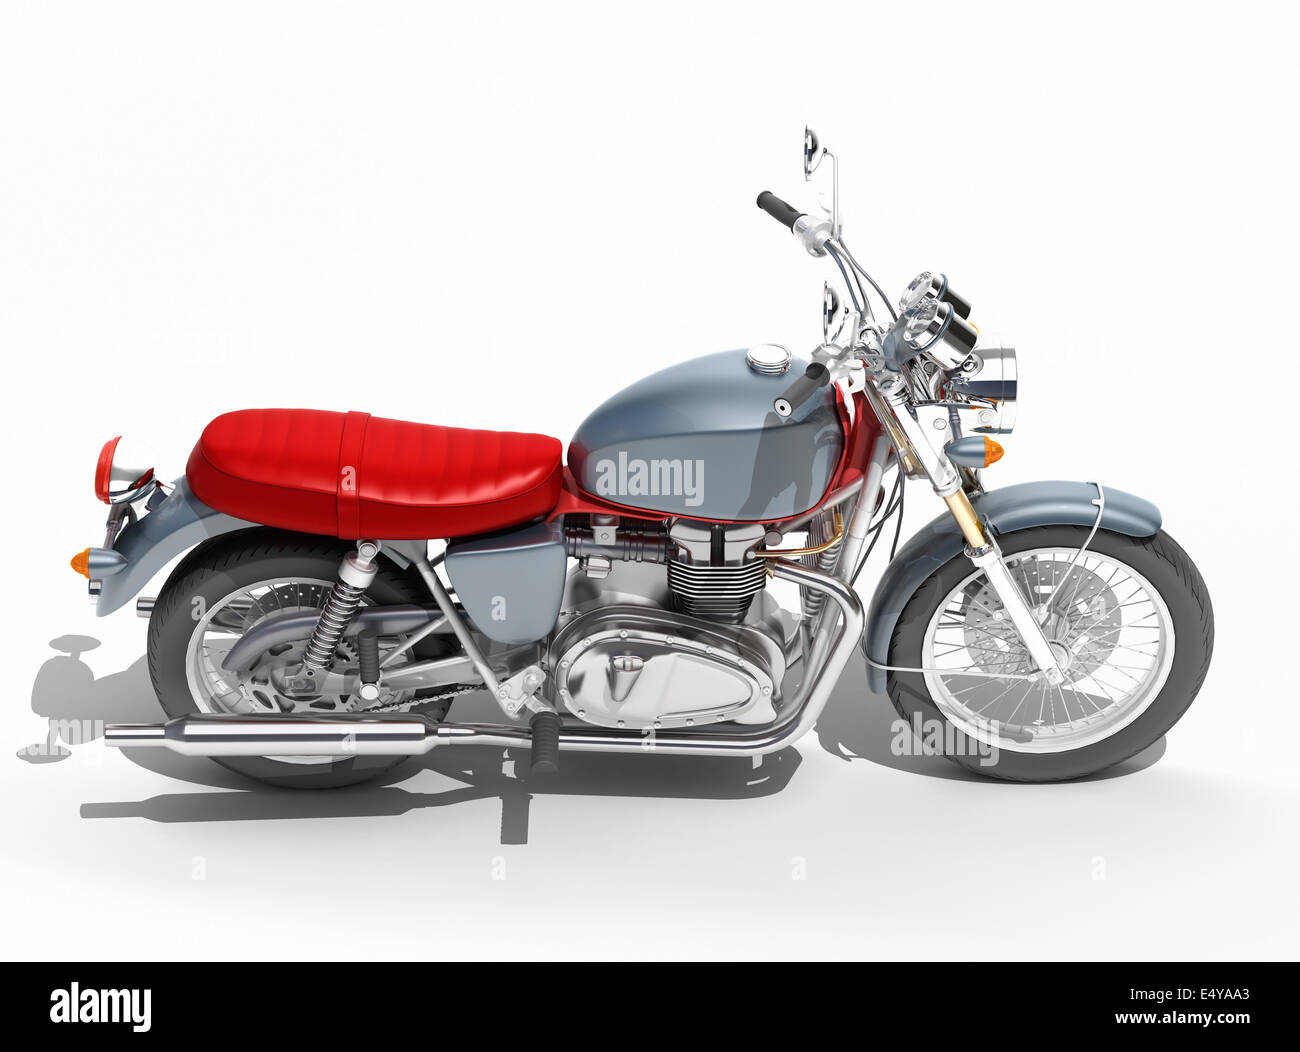 Classic motorcycle isolated - Stock Image